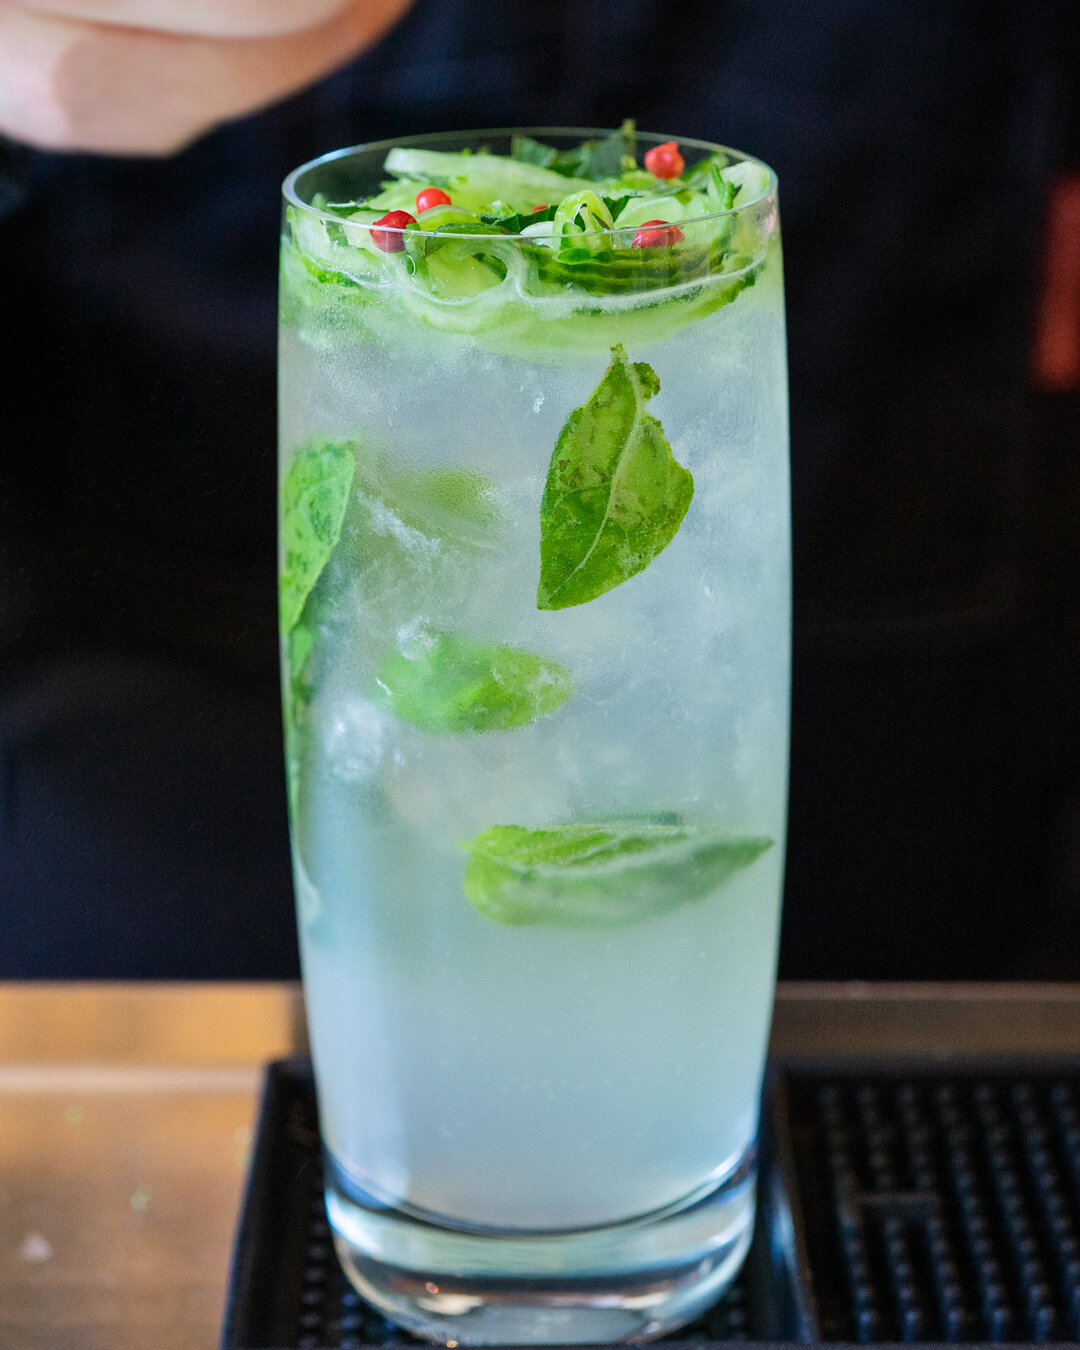 Canadian Gin with Secret Garden cocktail with cucumber slices, lime zest, mint and pink peppercorn garnish